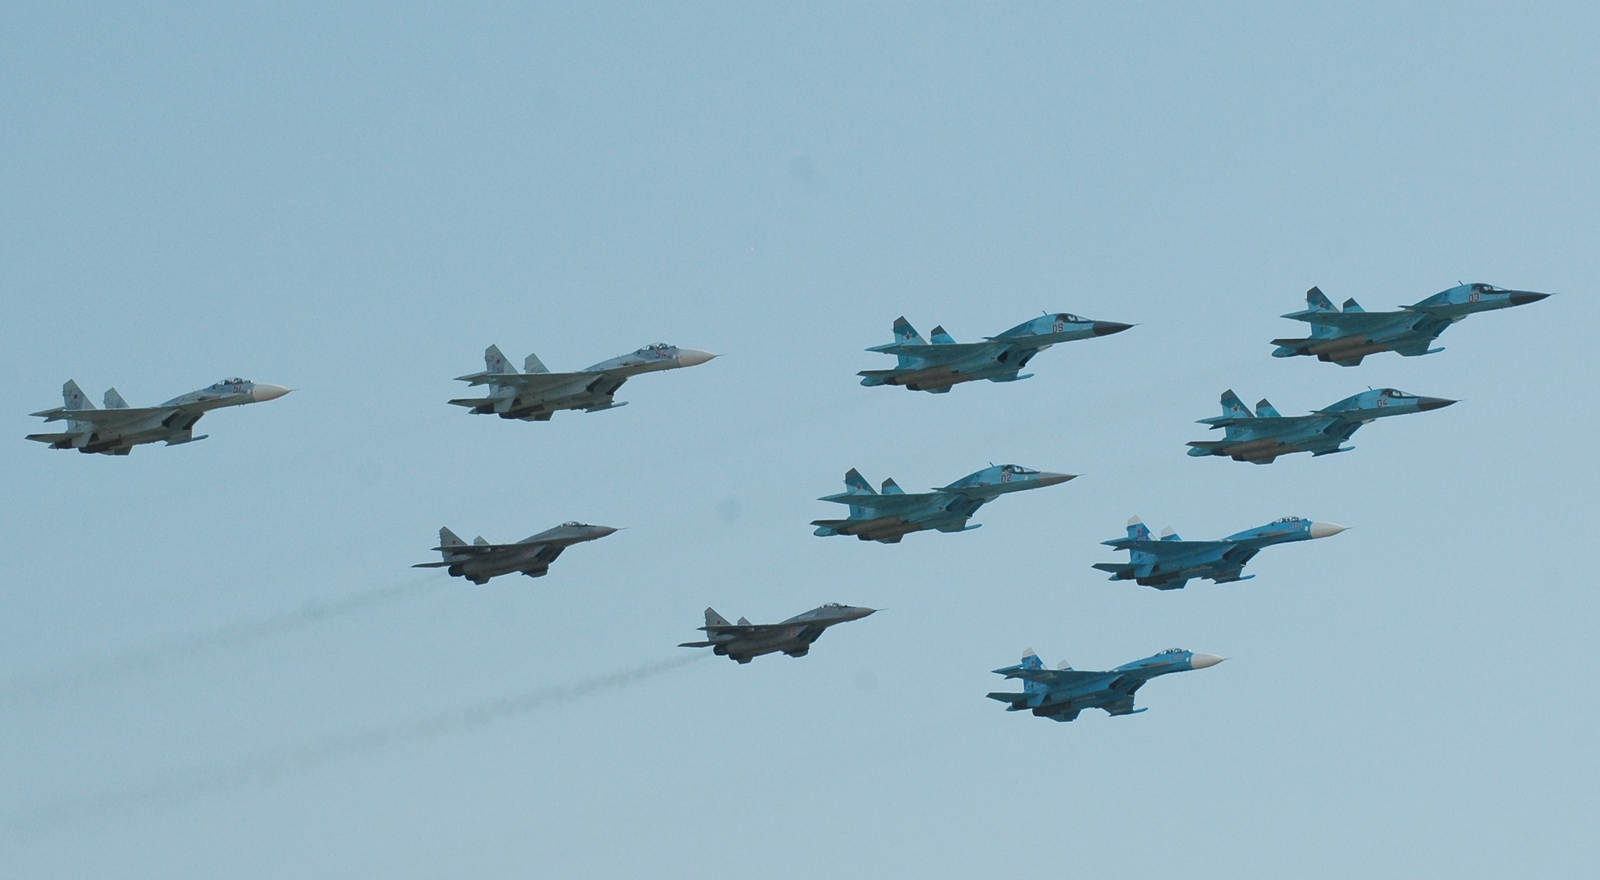 Four Su-34s, four Su-27Ms and two MiG-29SMTs flying together